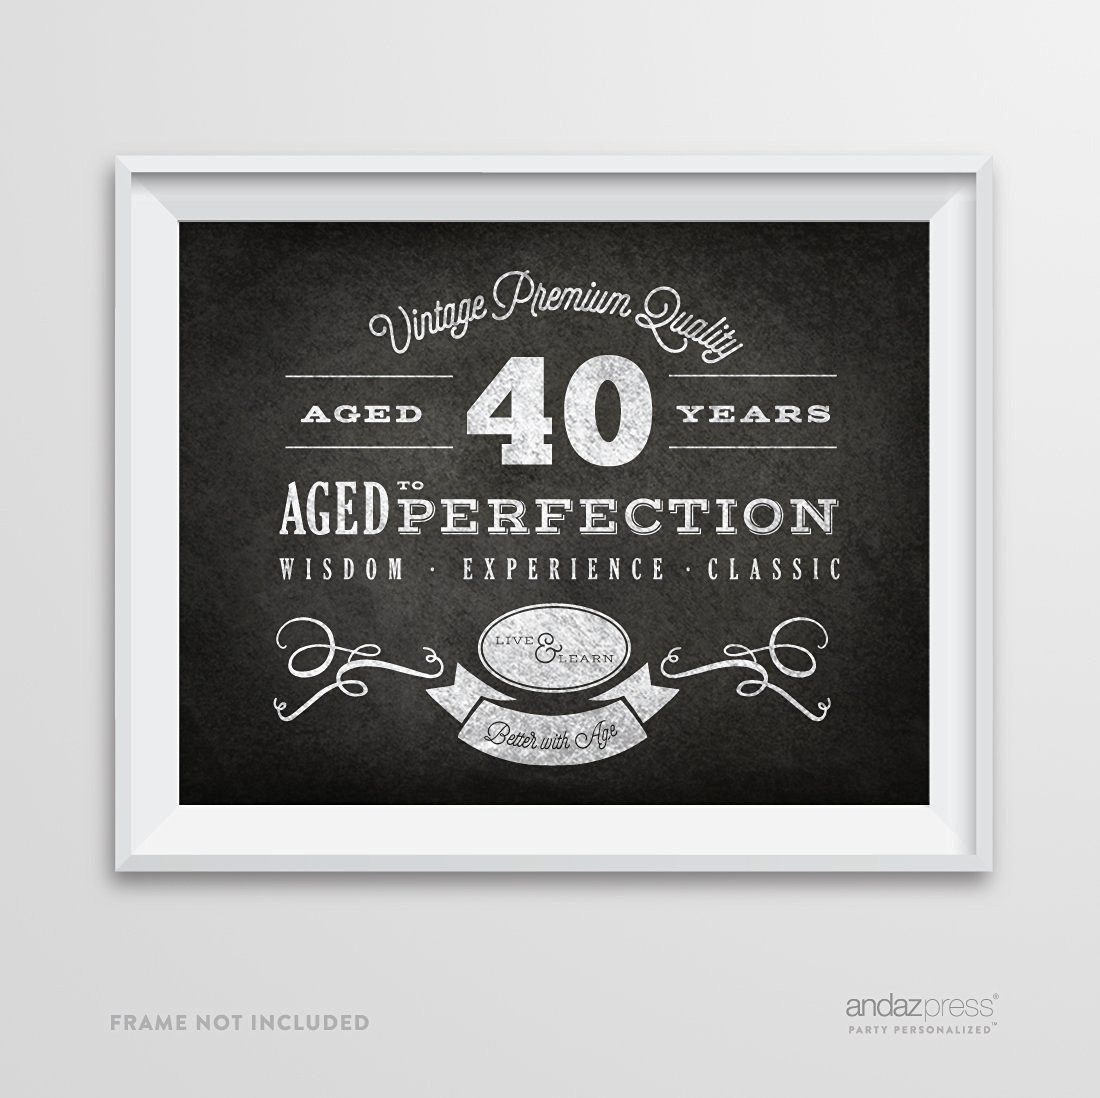 image about 40th Birthday Signs Printable referred to as Economical Absolutely free Birthday Indications Towards Print, identify No cost Birthday Signs or symptoms